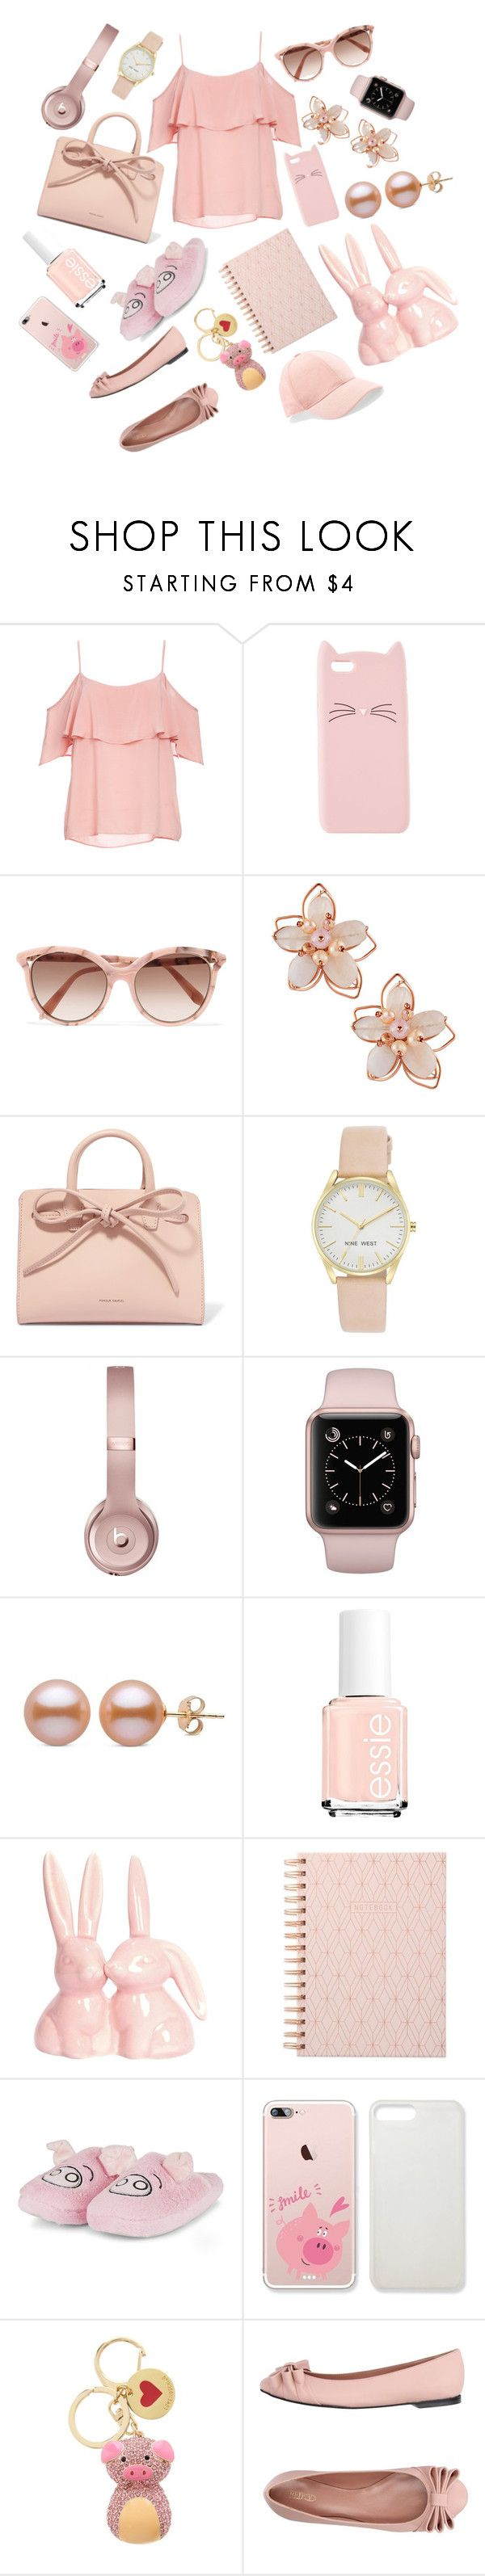 """""""Pinky Pig"""" by enteranoriginalusernamehere ❤ liked on Polyvore featuring BB Dakota, Charlotte Russe, Victoria Beckham, NAKAMOL, Mansur Gavriel, Nine West, Beats by Dr. Dre, DESIGNWORKS INK, Love Moschino and RED Valentino"""